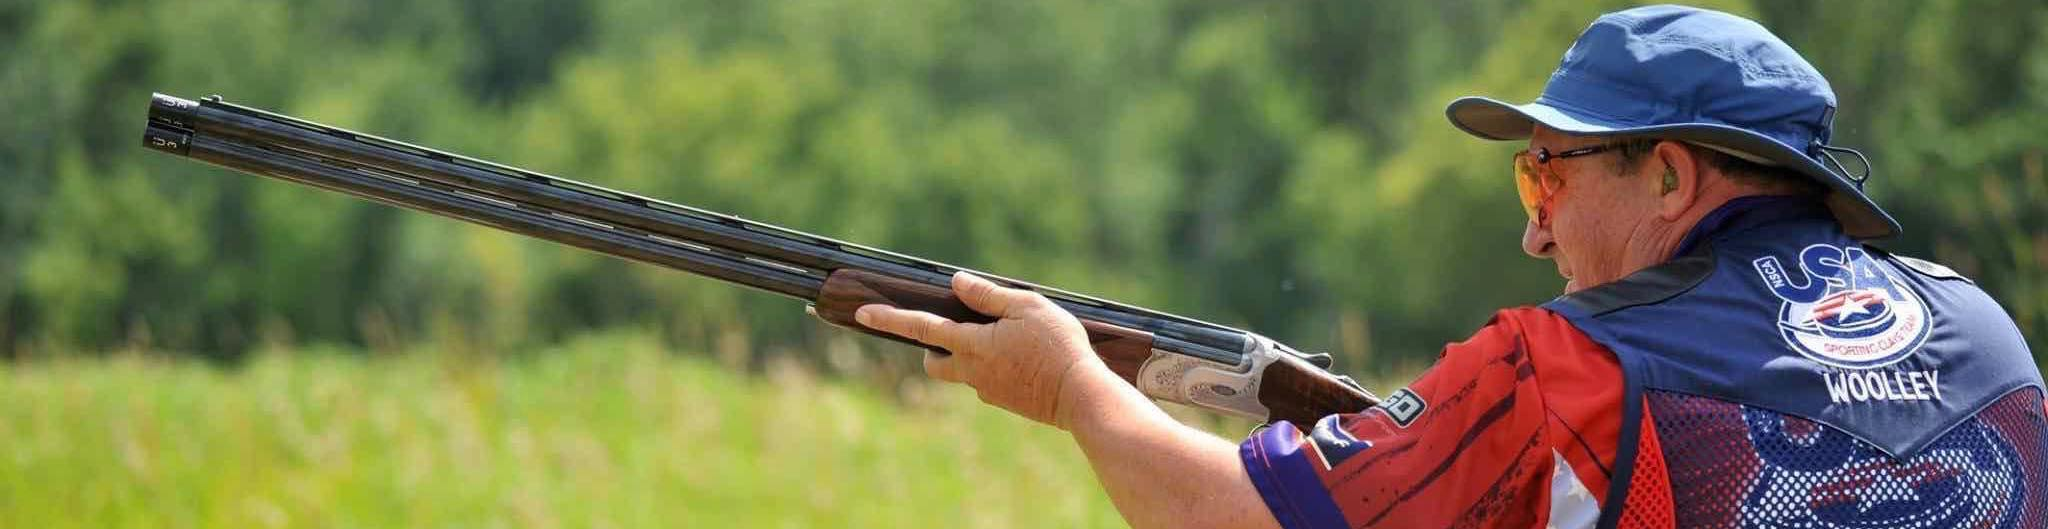 FITASC-Sybarite-Sporting-Clay-Shooting-J